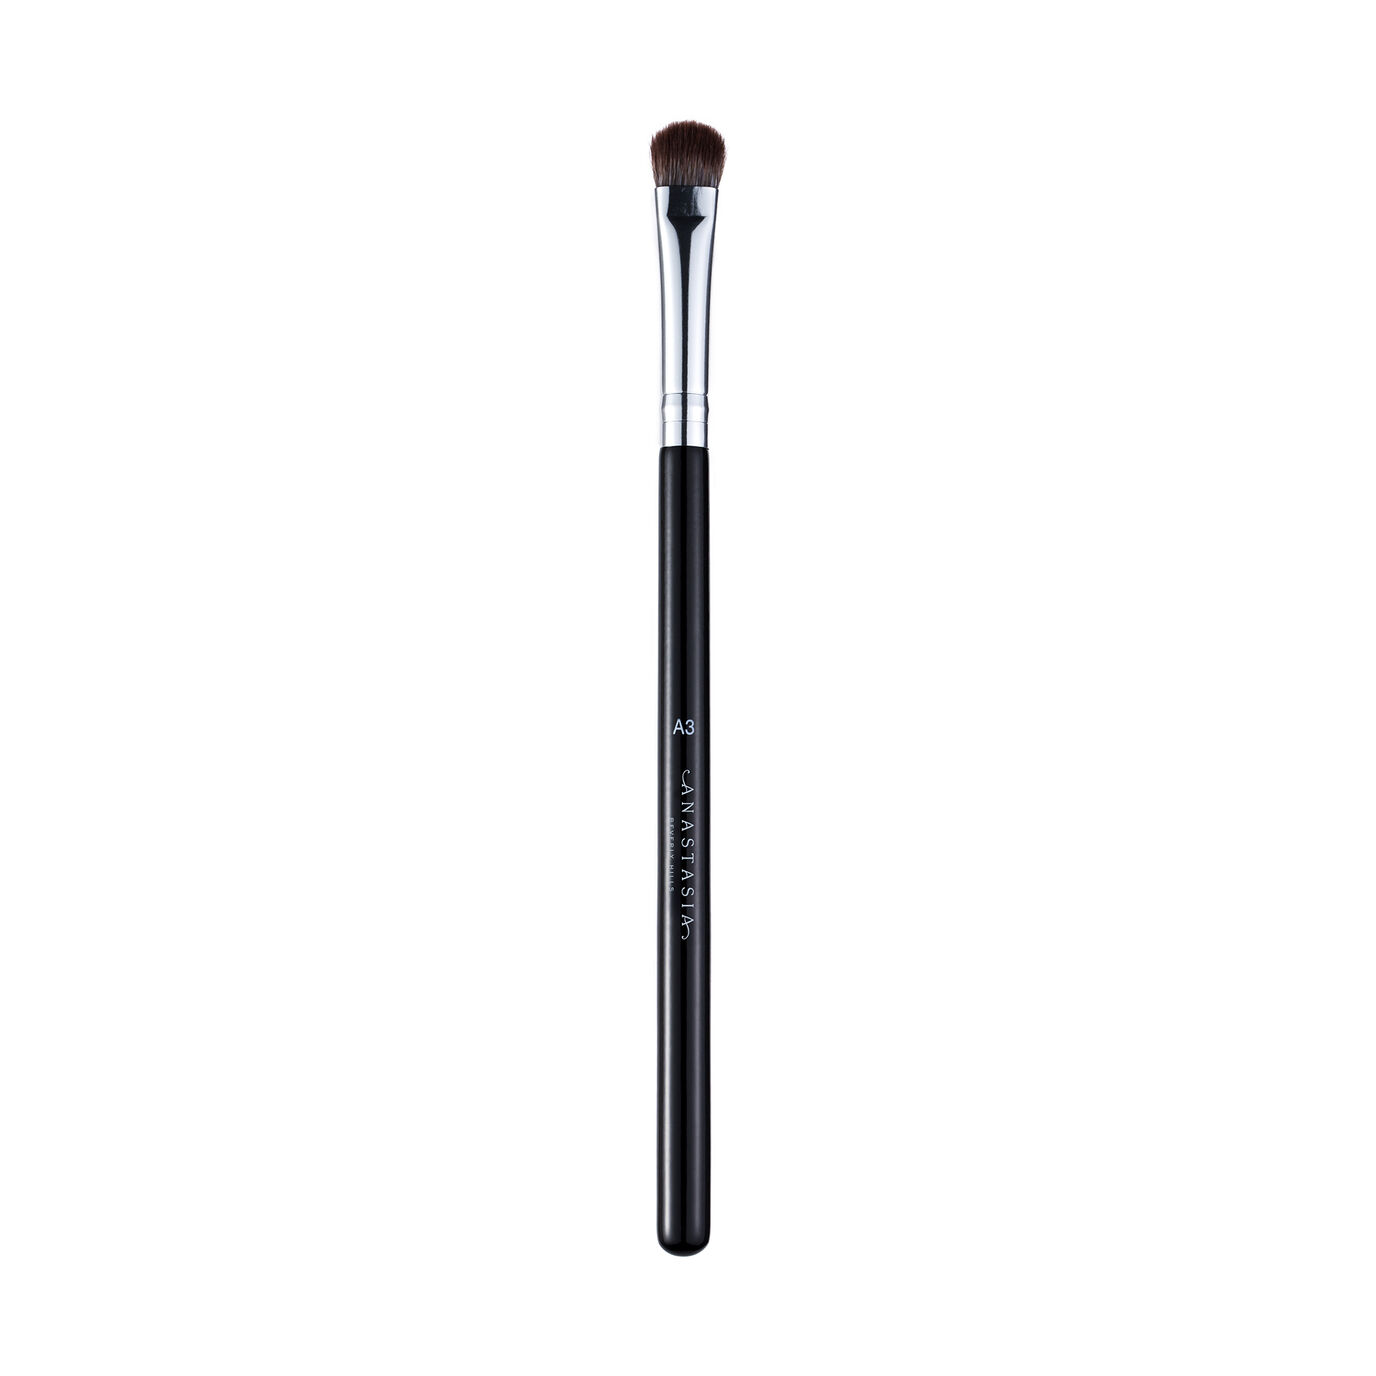 A3 Pro Brush - Firm Shader Brush